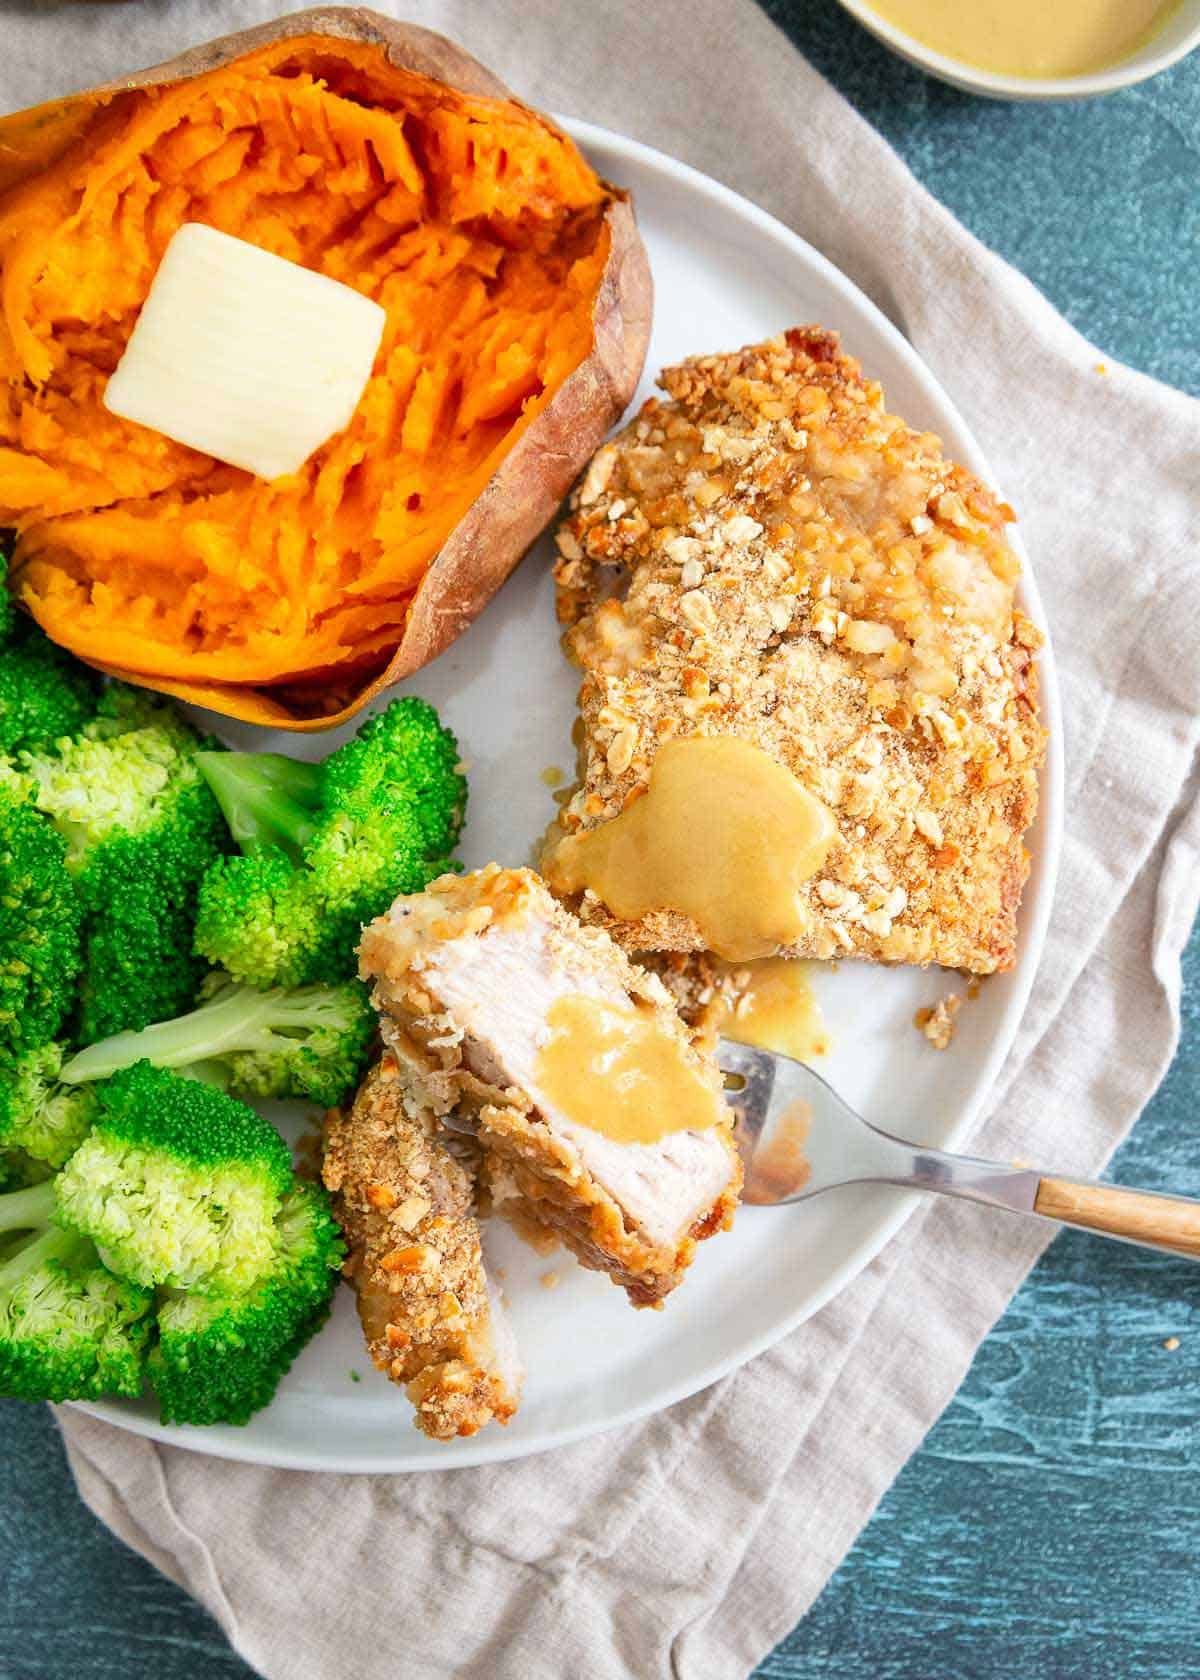 Pretzel pork chops baked in the oven with broccoli and sweet potato make a nutritious and delicious weeknight dinner.